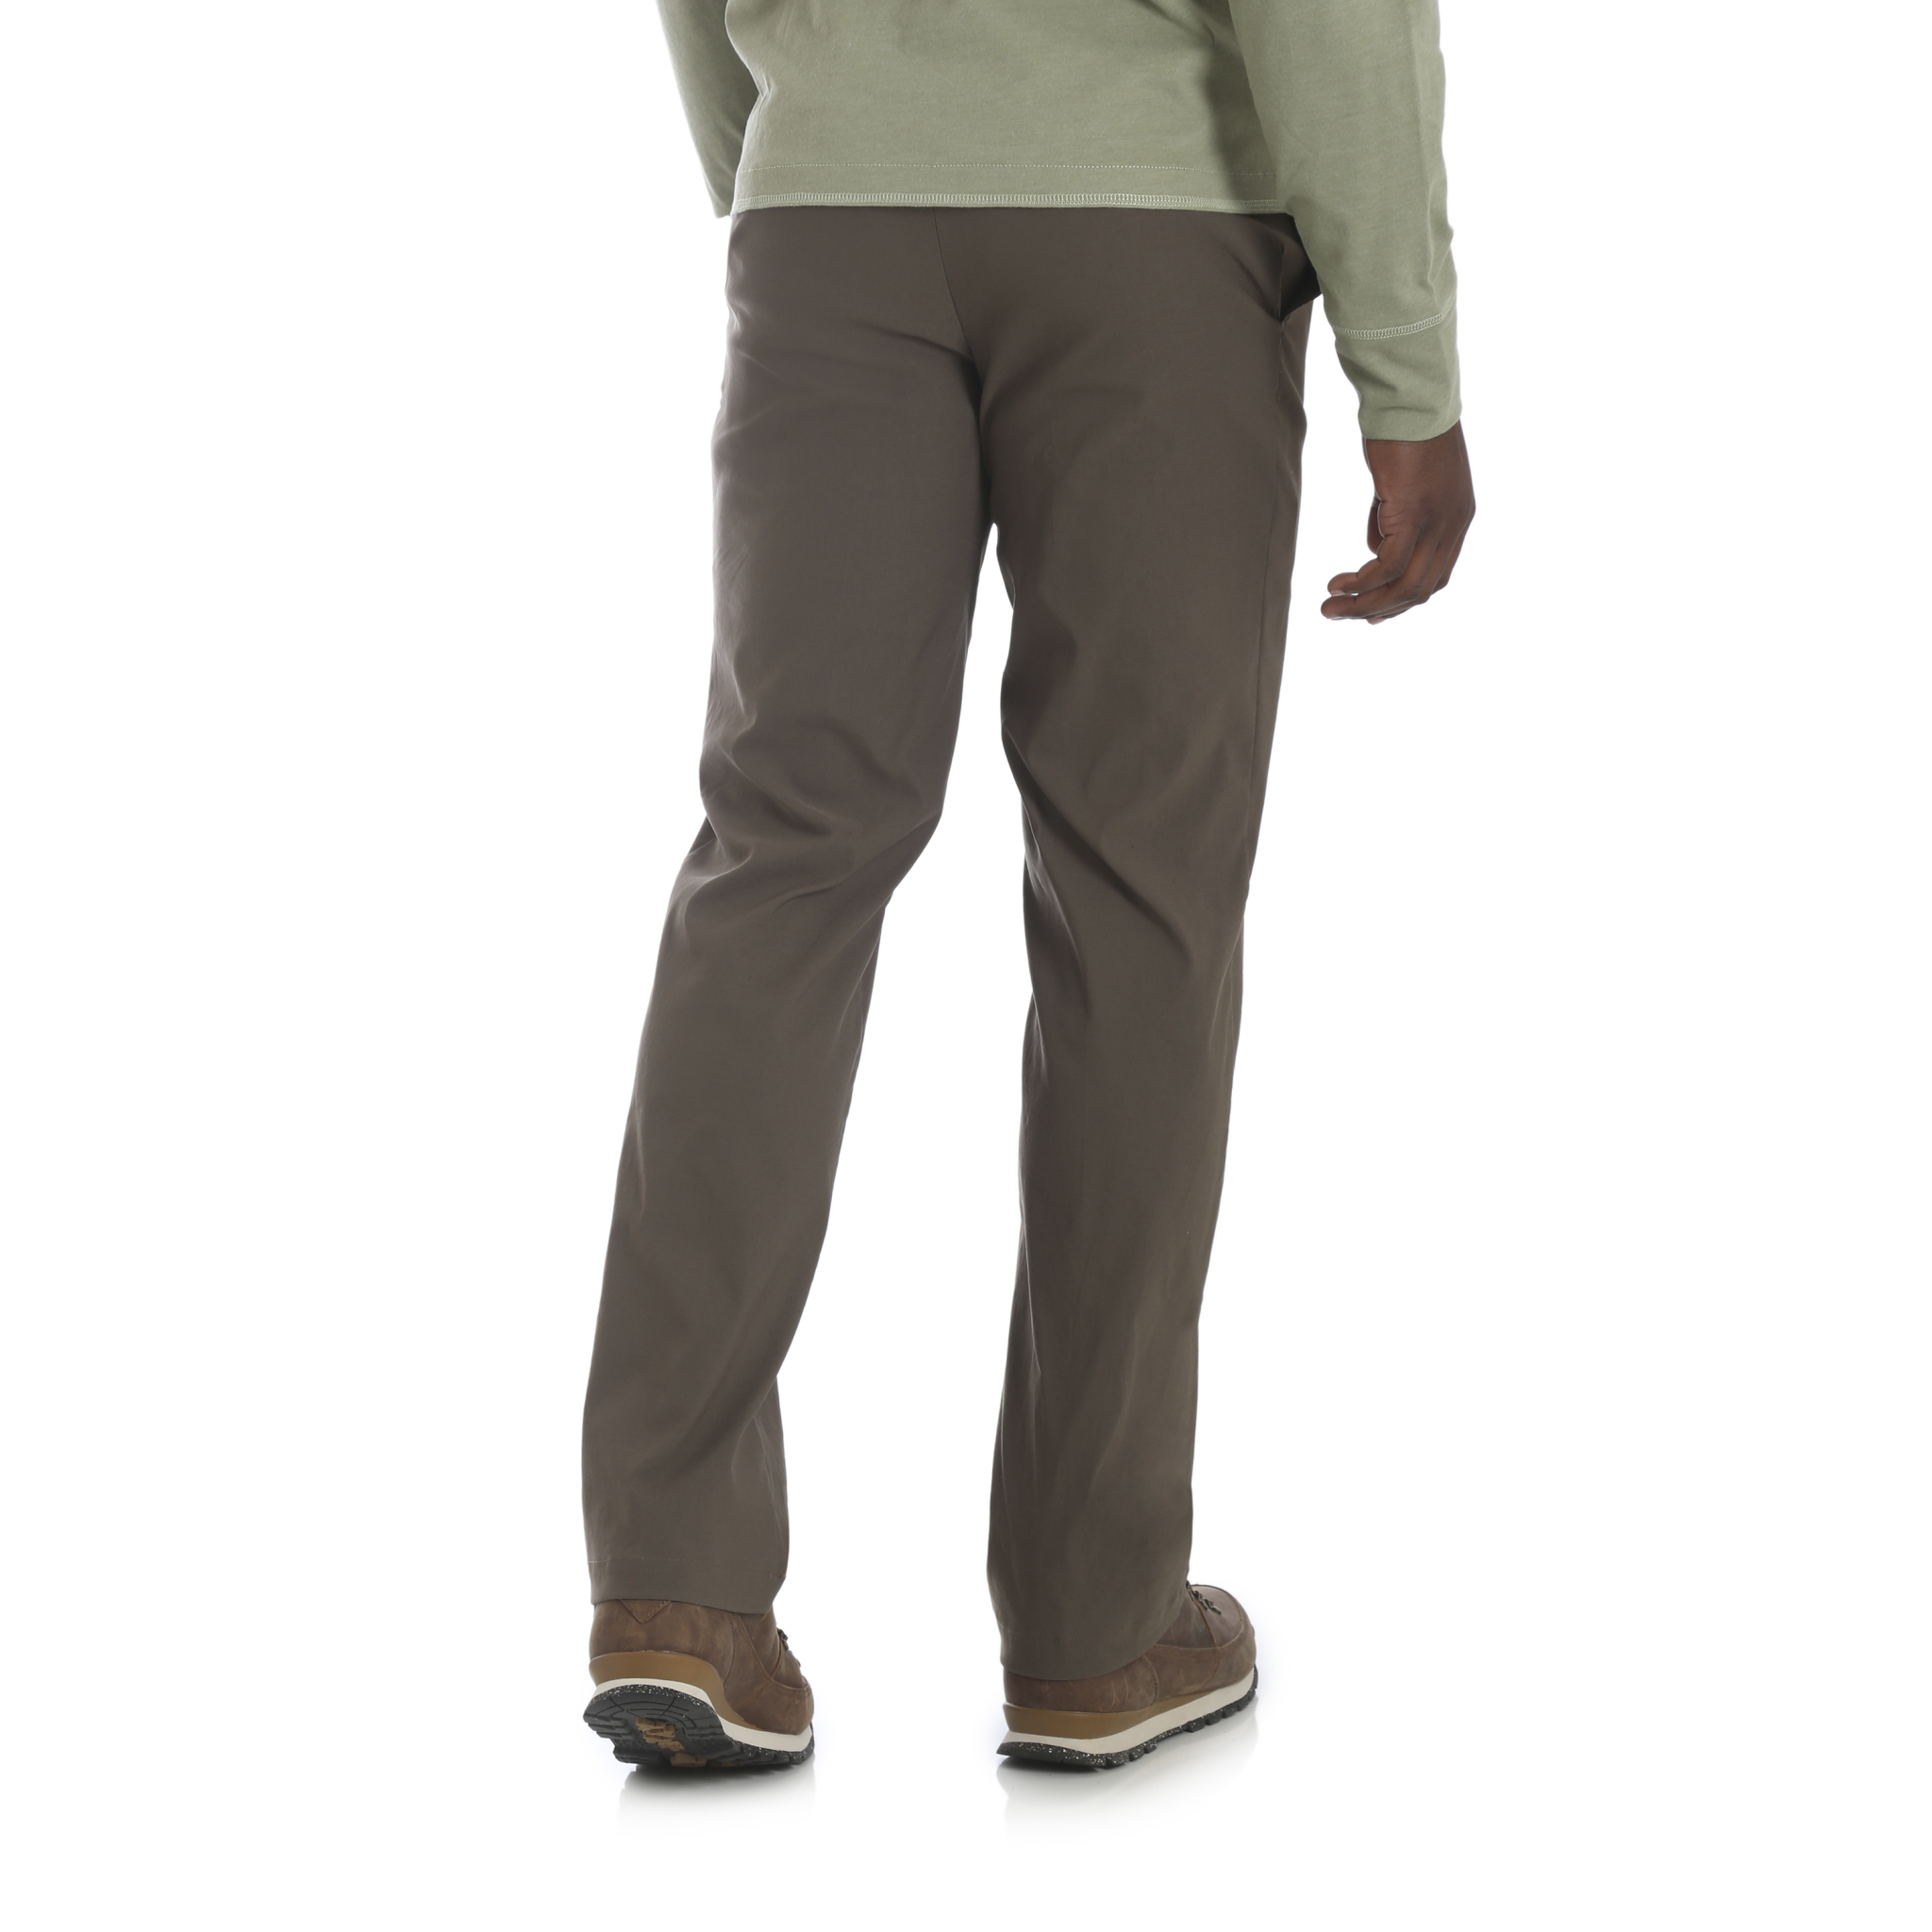 Wrangler-Neuf-Solide-Homme-Performance-Series-Outdoor-Confort-Coupe-Droite-Pantalon miniature 9